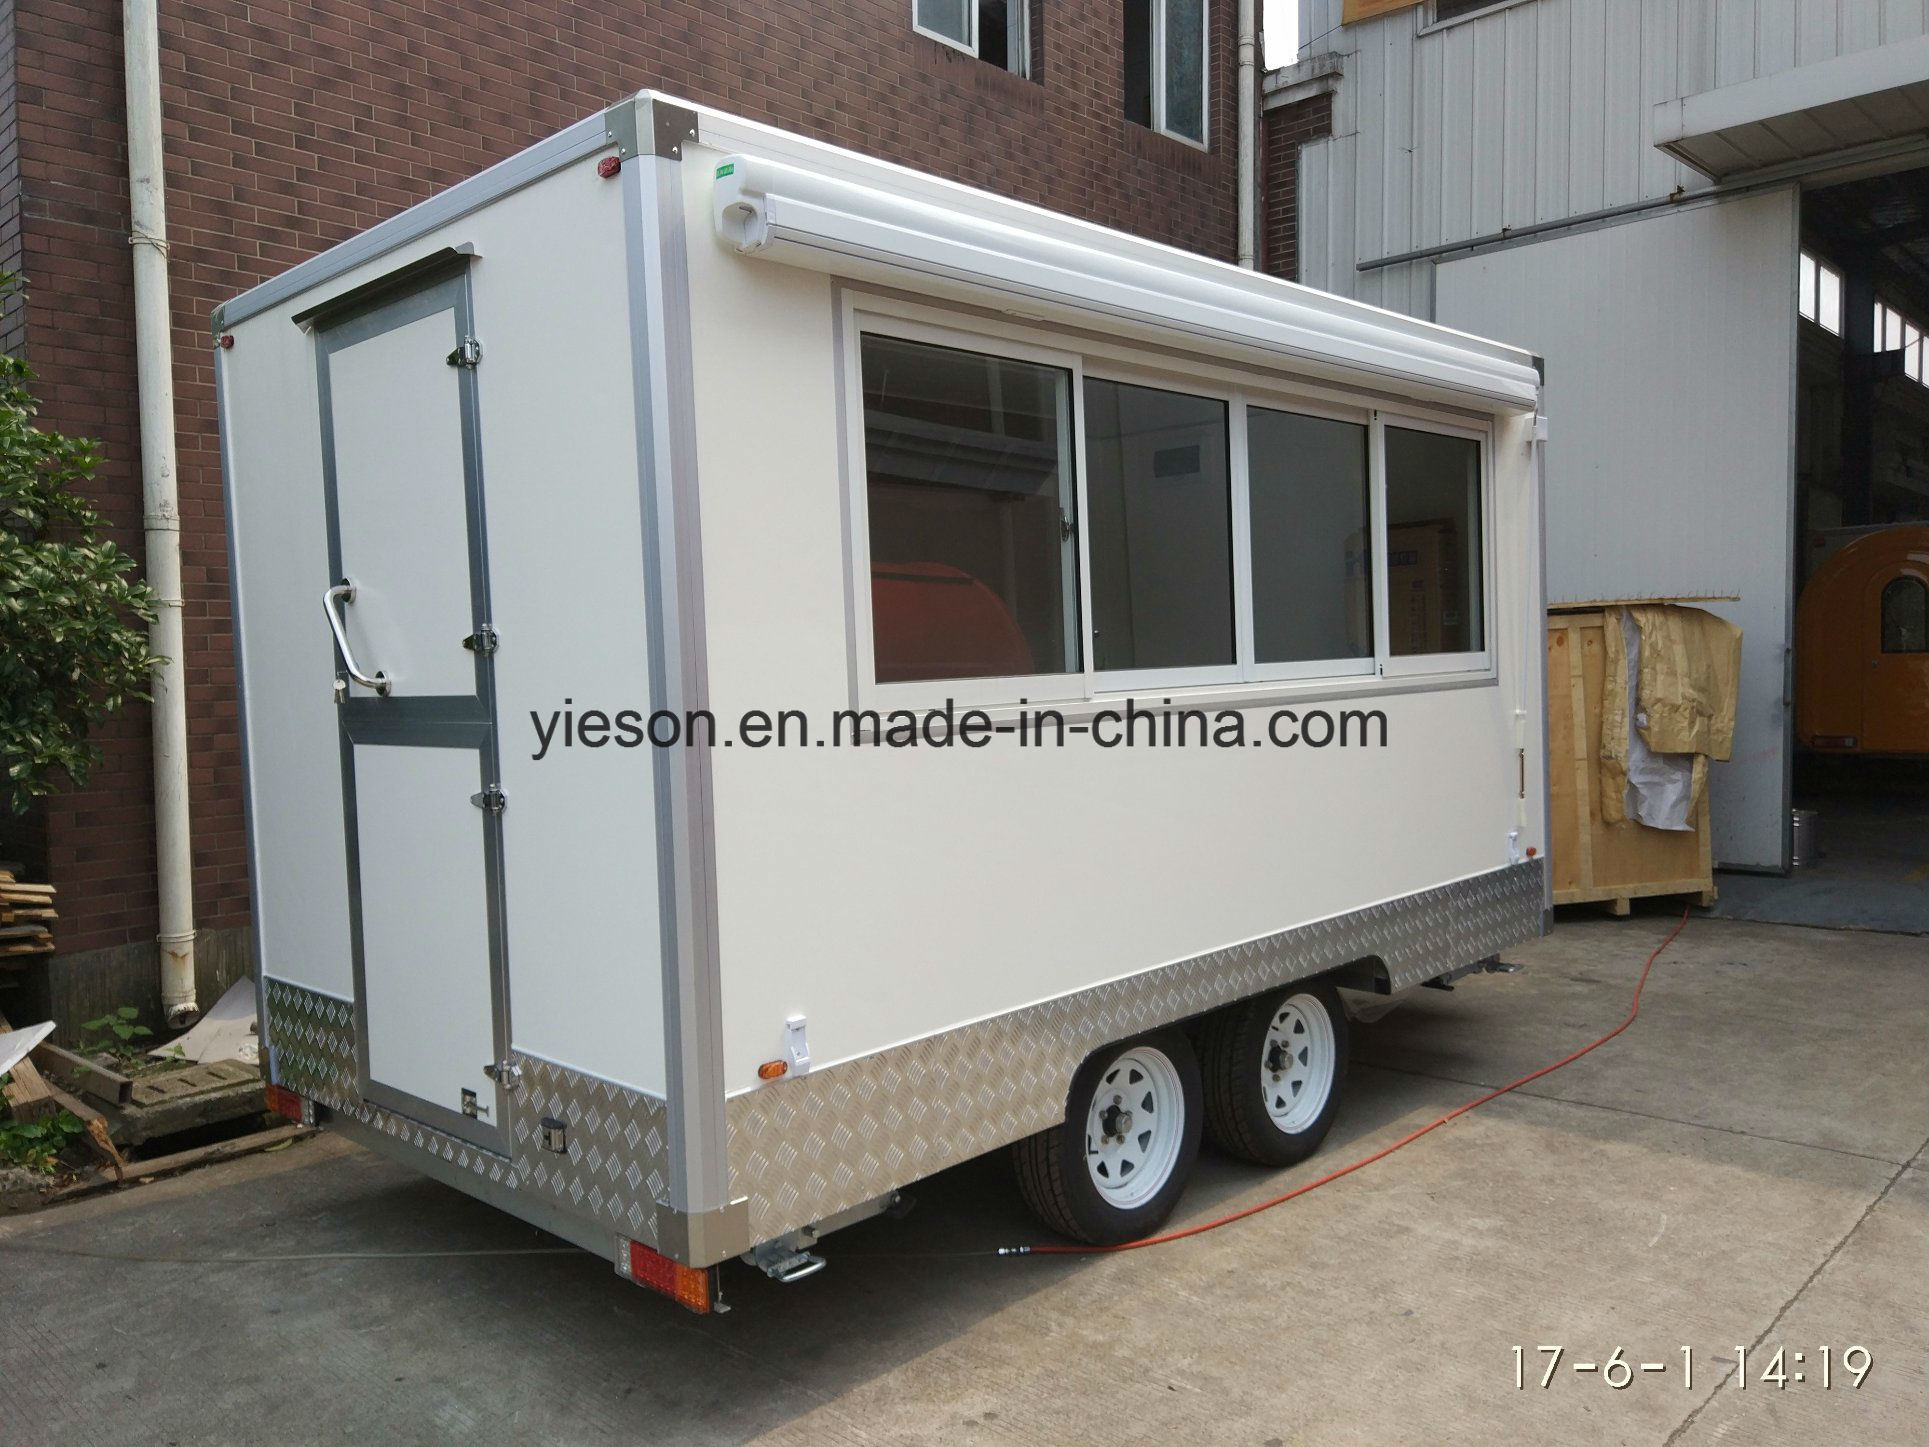 Yieson Made Mobile Food Van for Sale